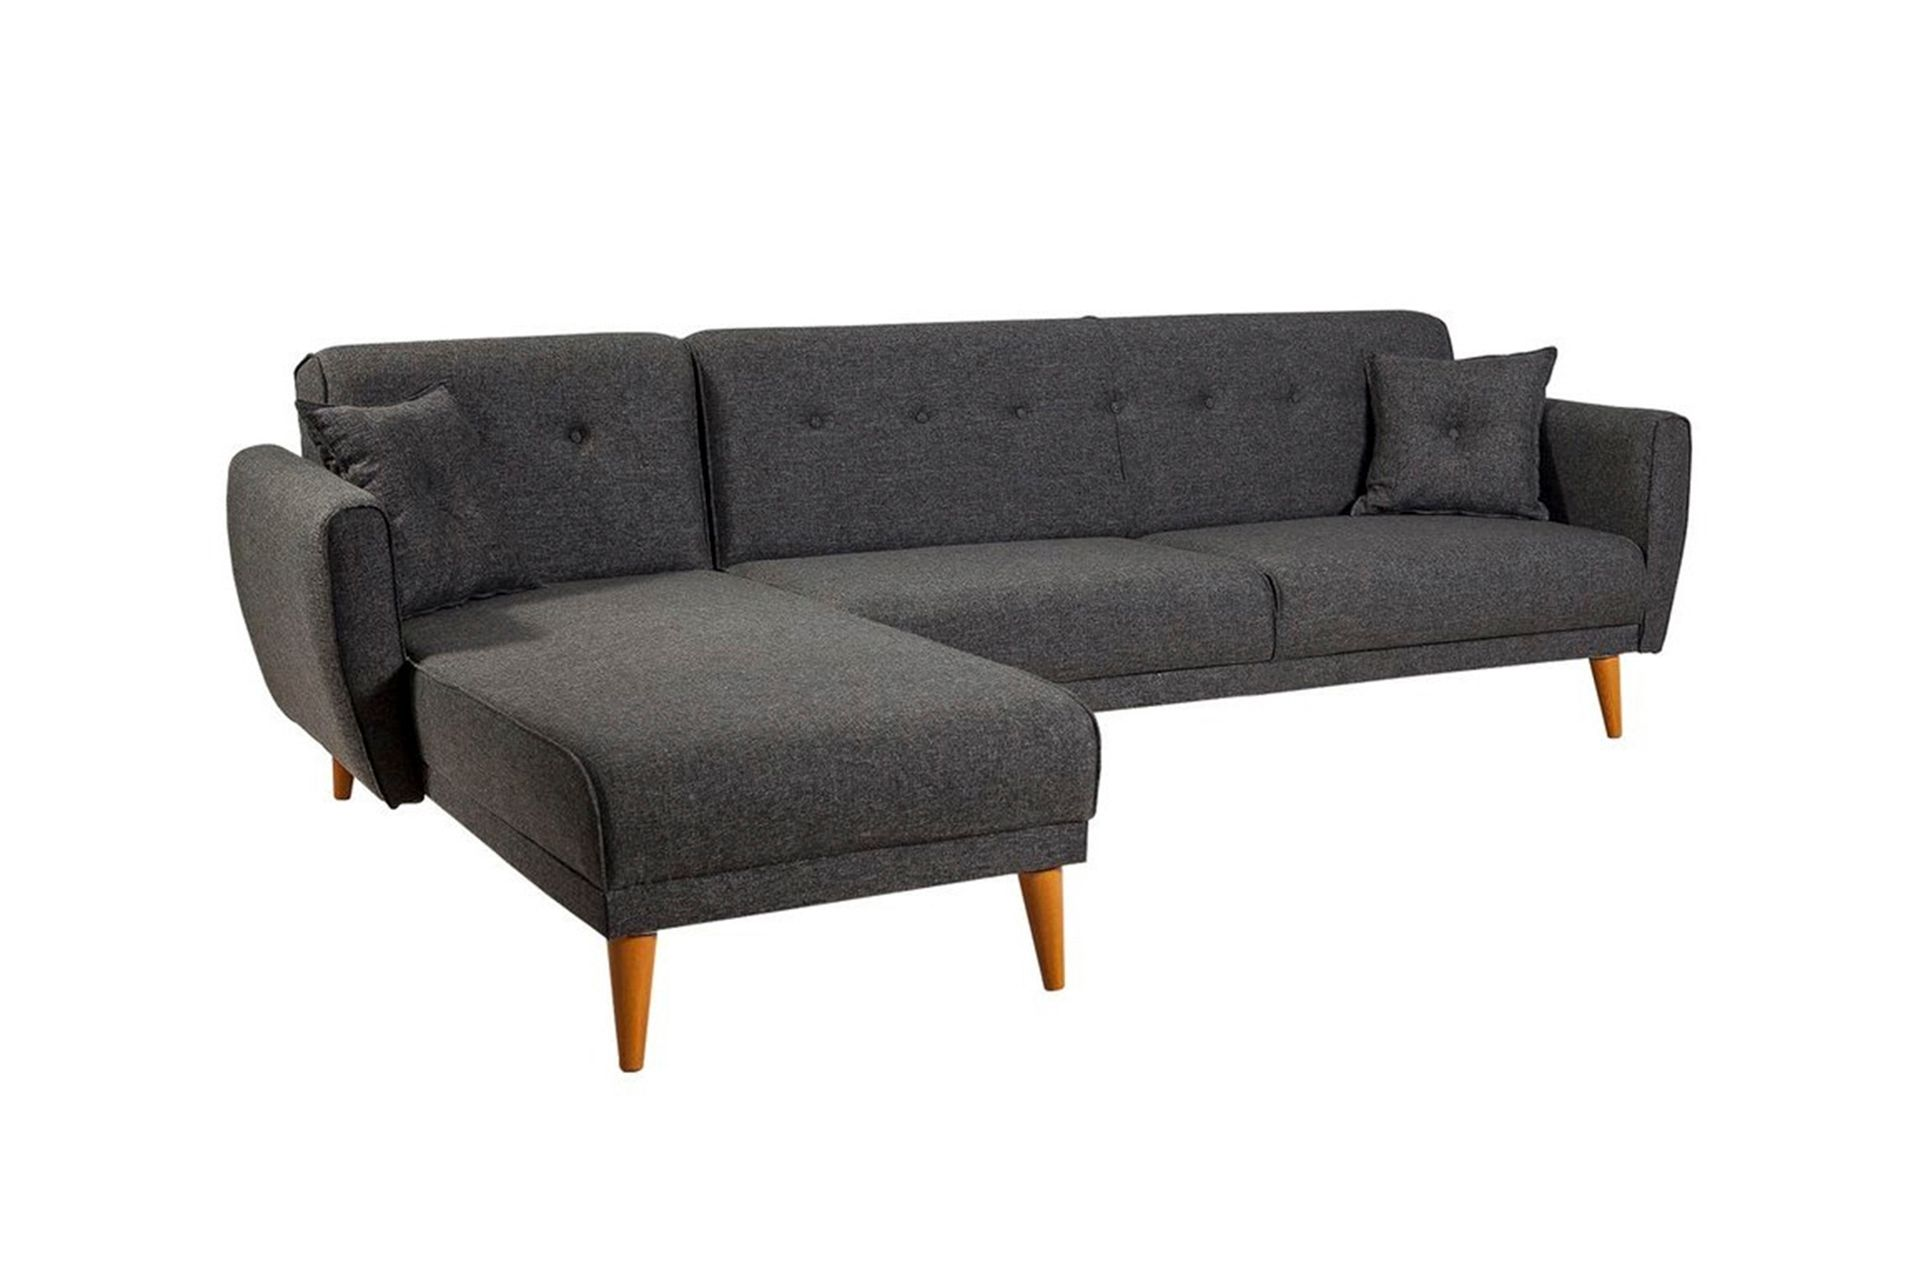 Aria Corner Chaise Sofa Bed, Left, Charcoal